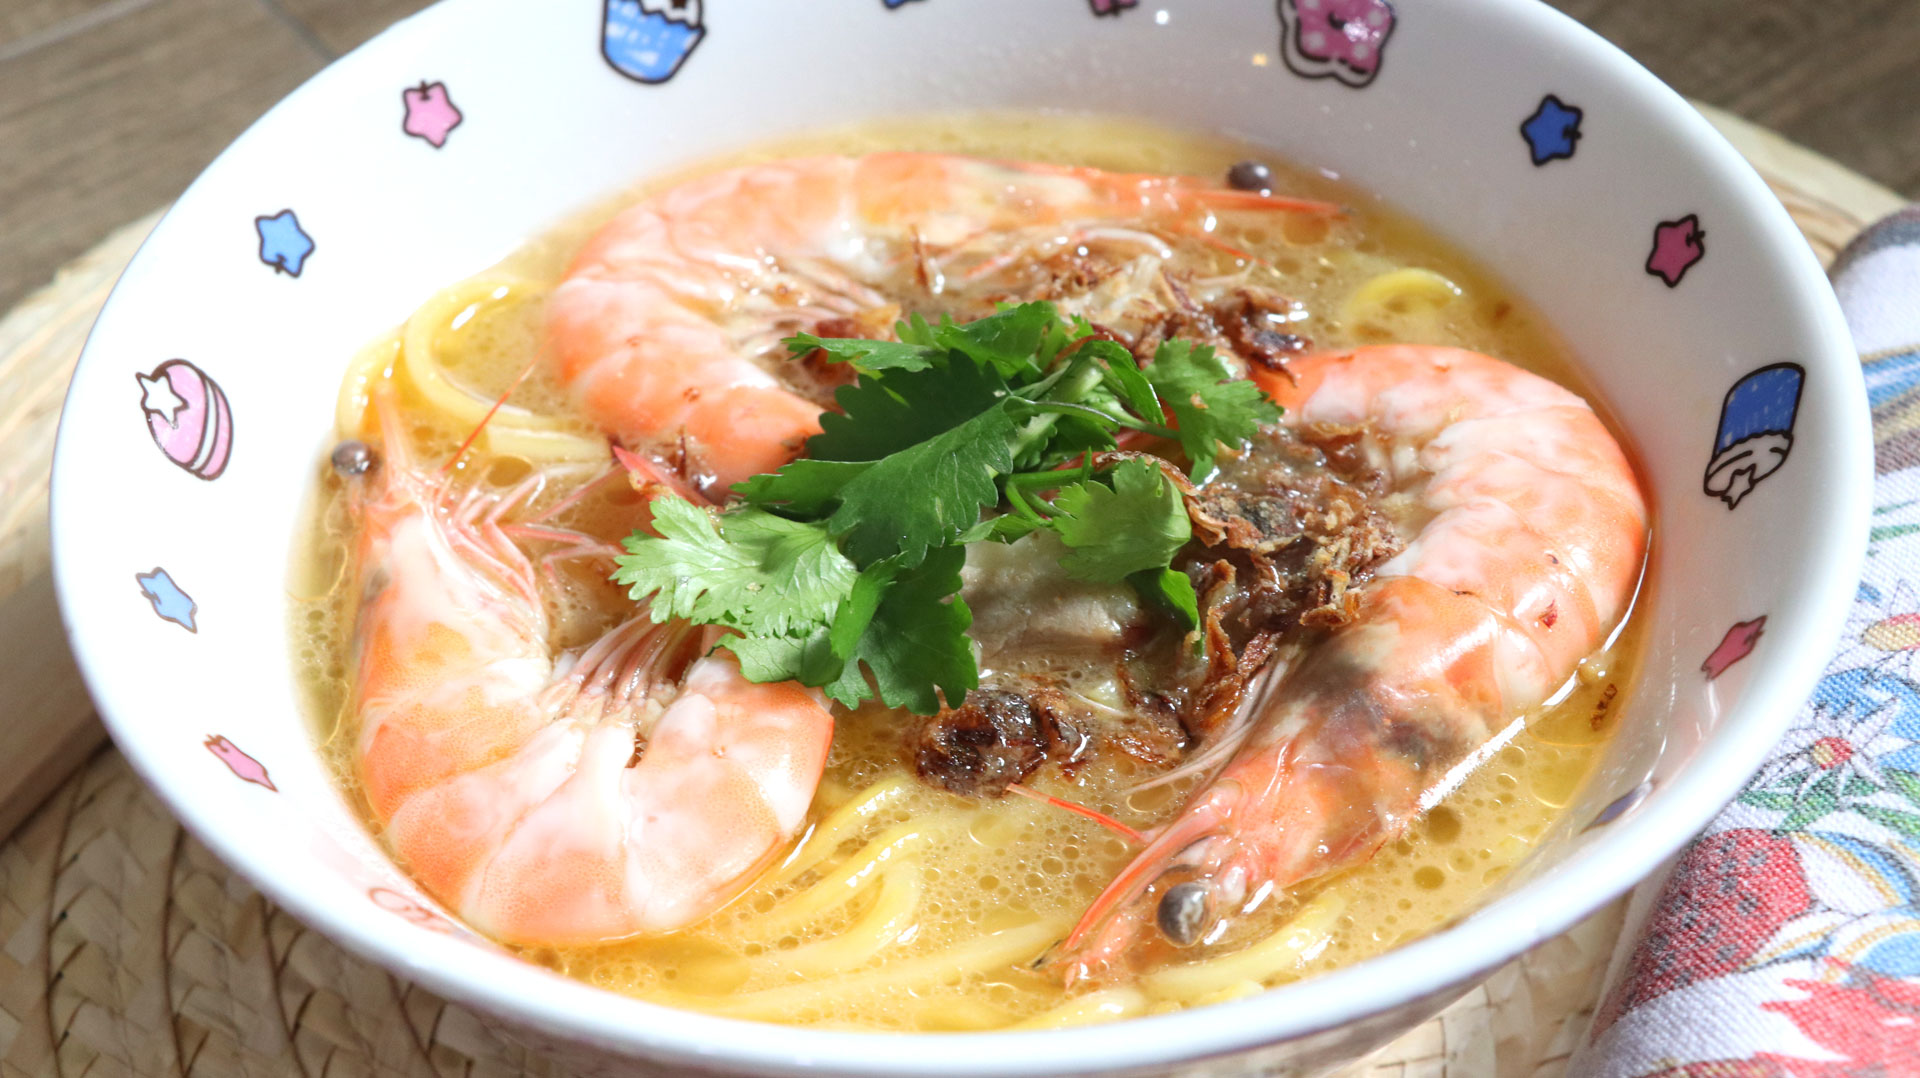 two-bad-chefs-prawn-noodle-dish-01.jpg